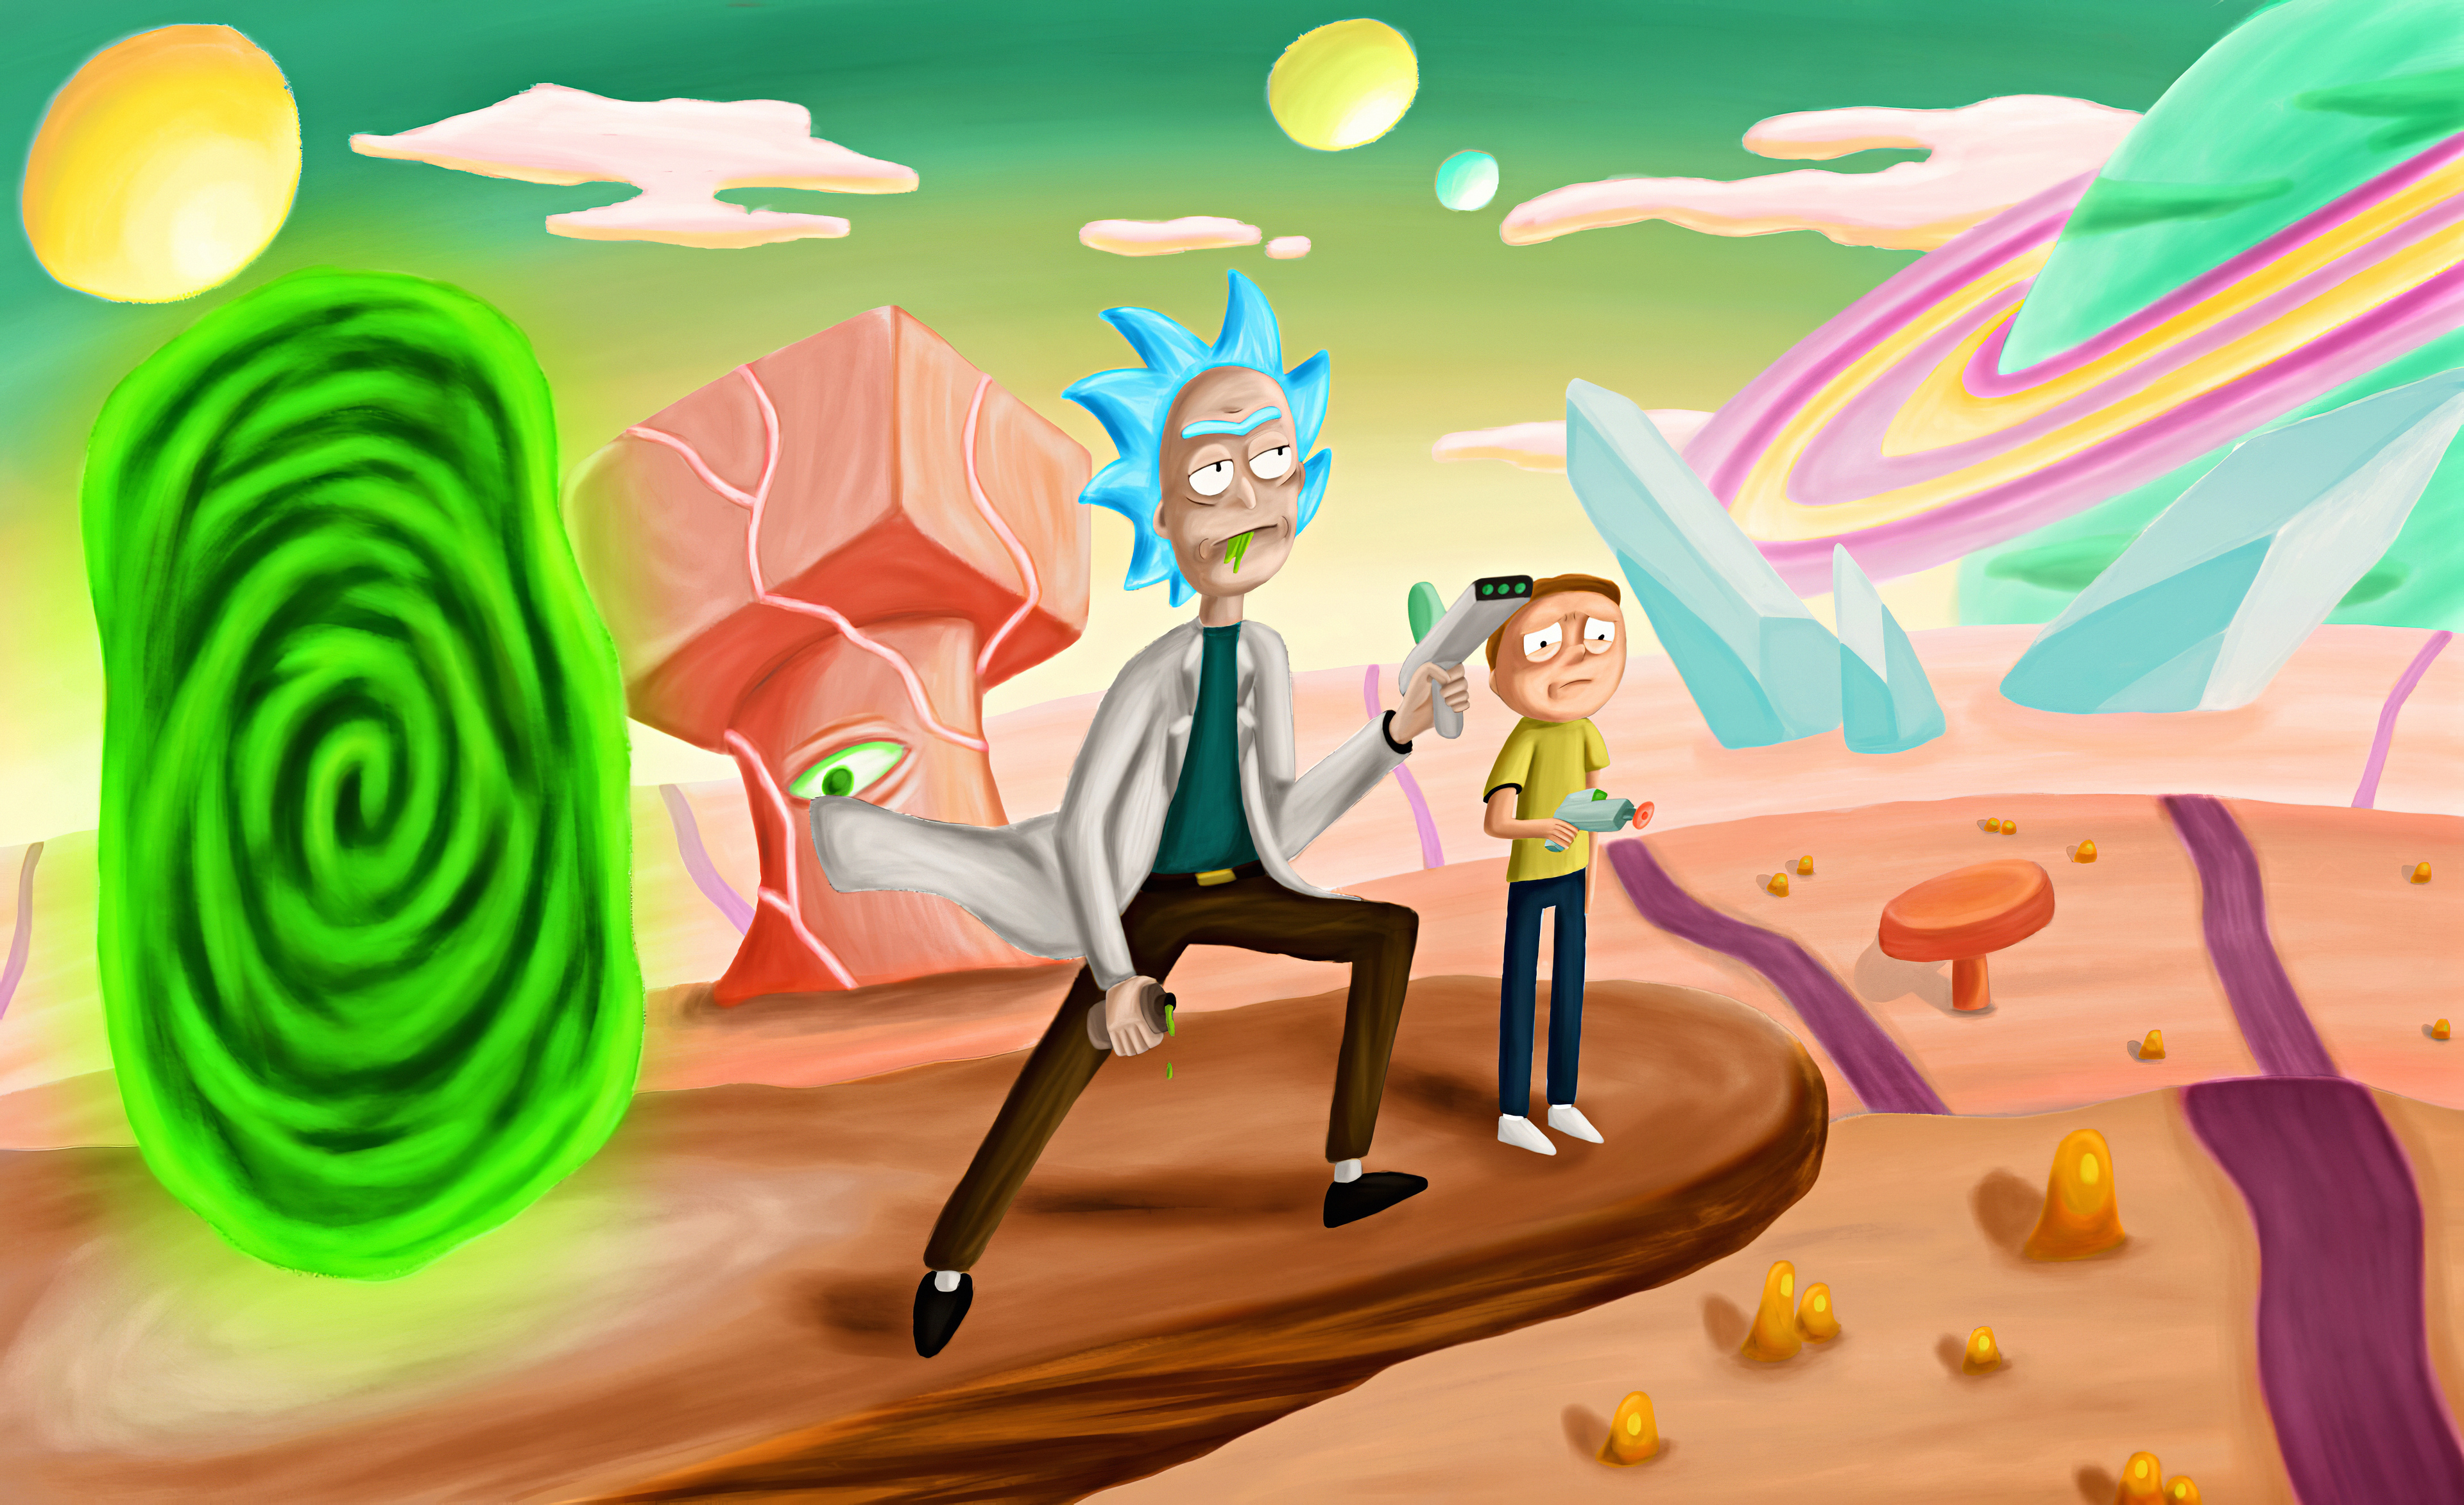 Rick And Morty 4k Ultra Hd Wallpaper Background Image